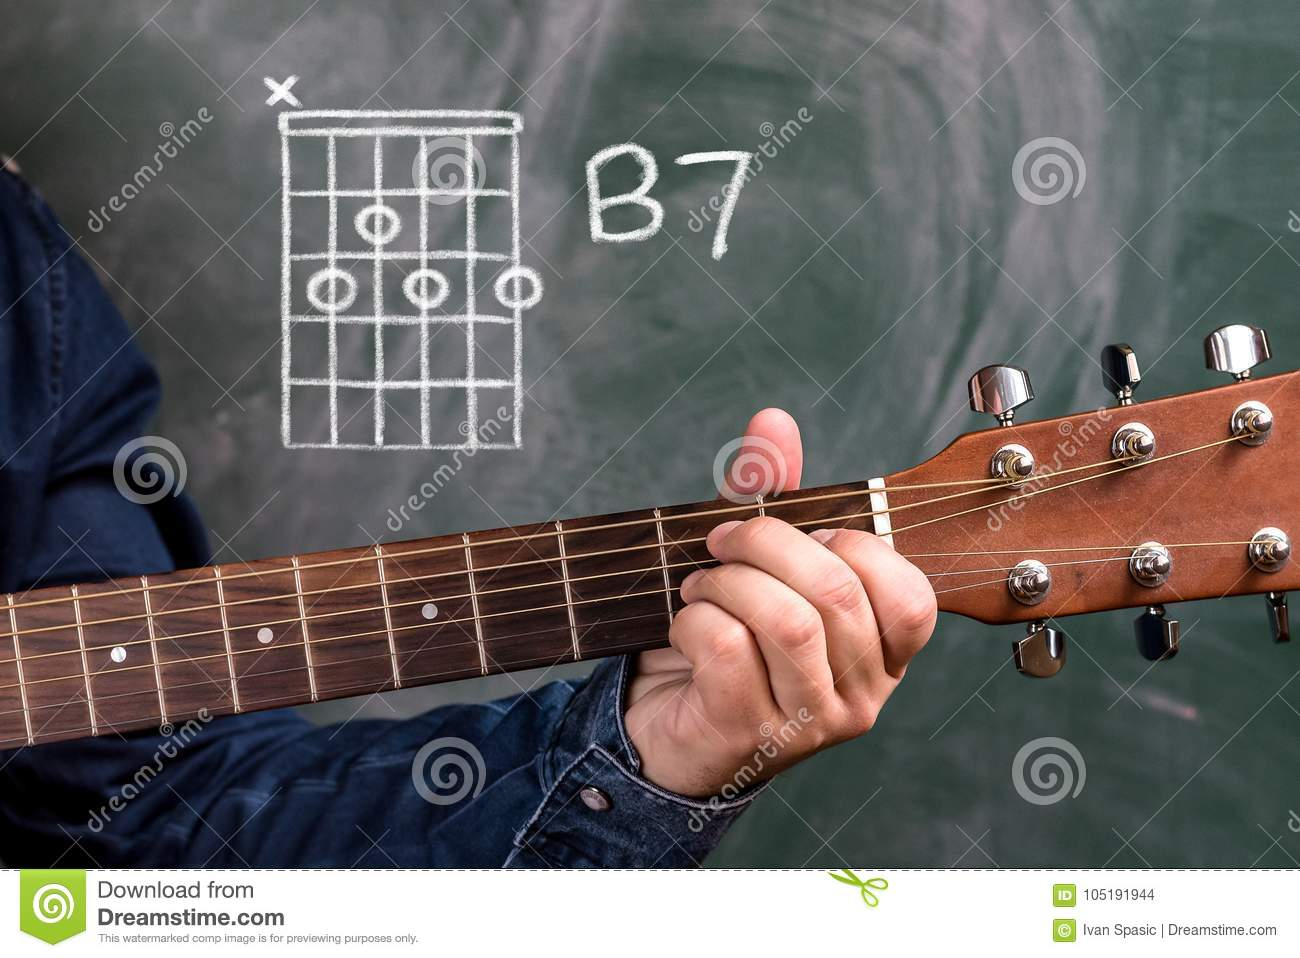 Man Playing Guitar Chords Displayed On A Blackboard Chord B7 Stock